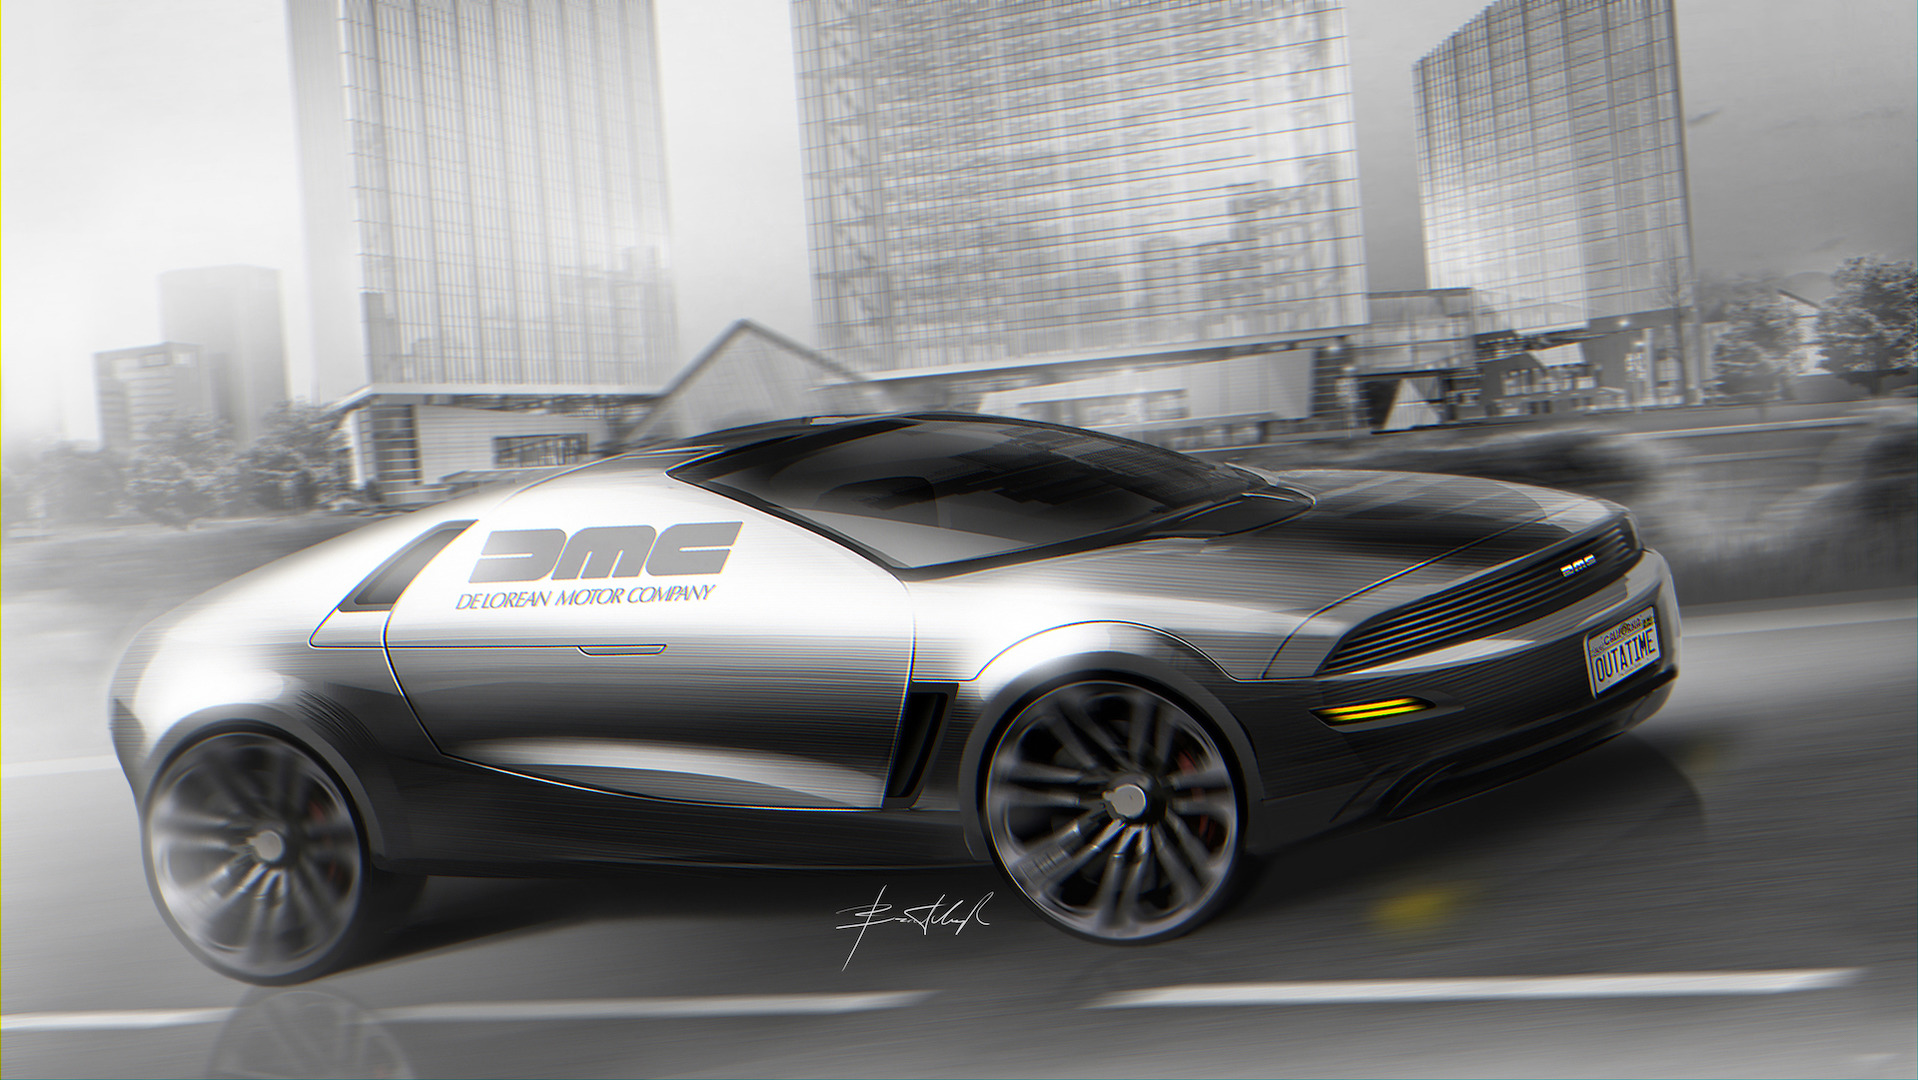 Delorean dmc 12 concept